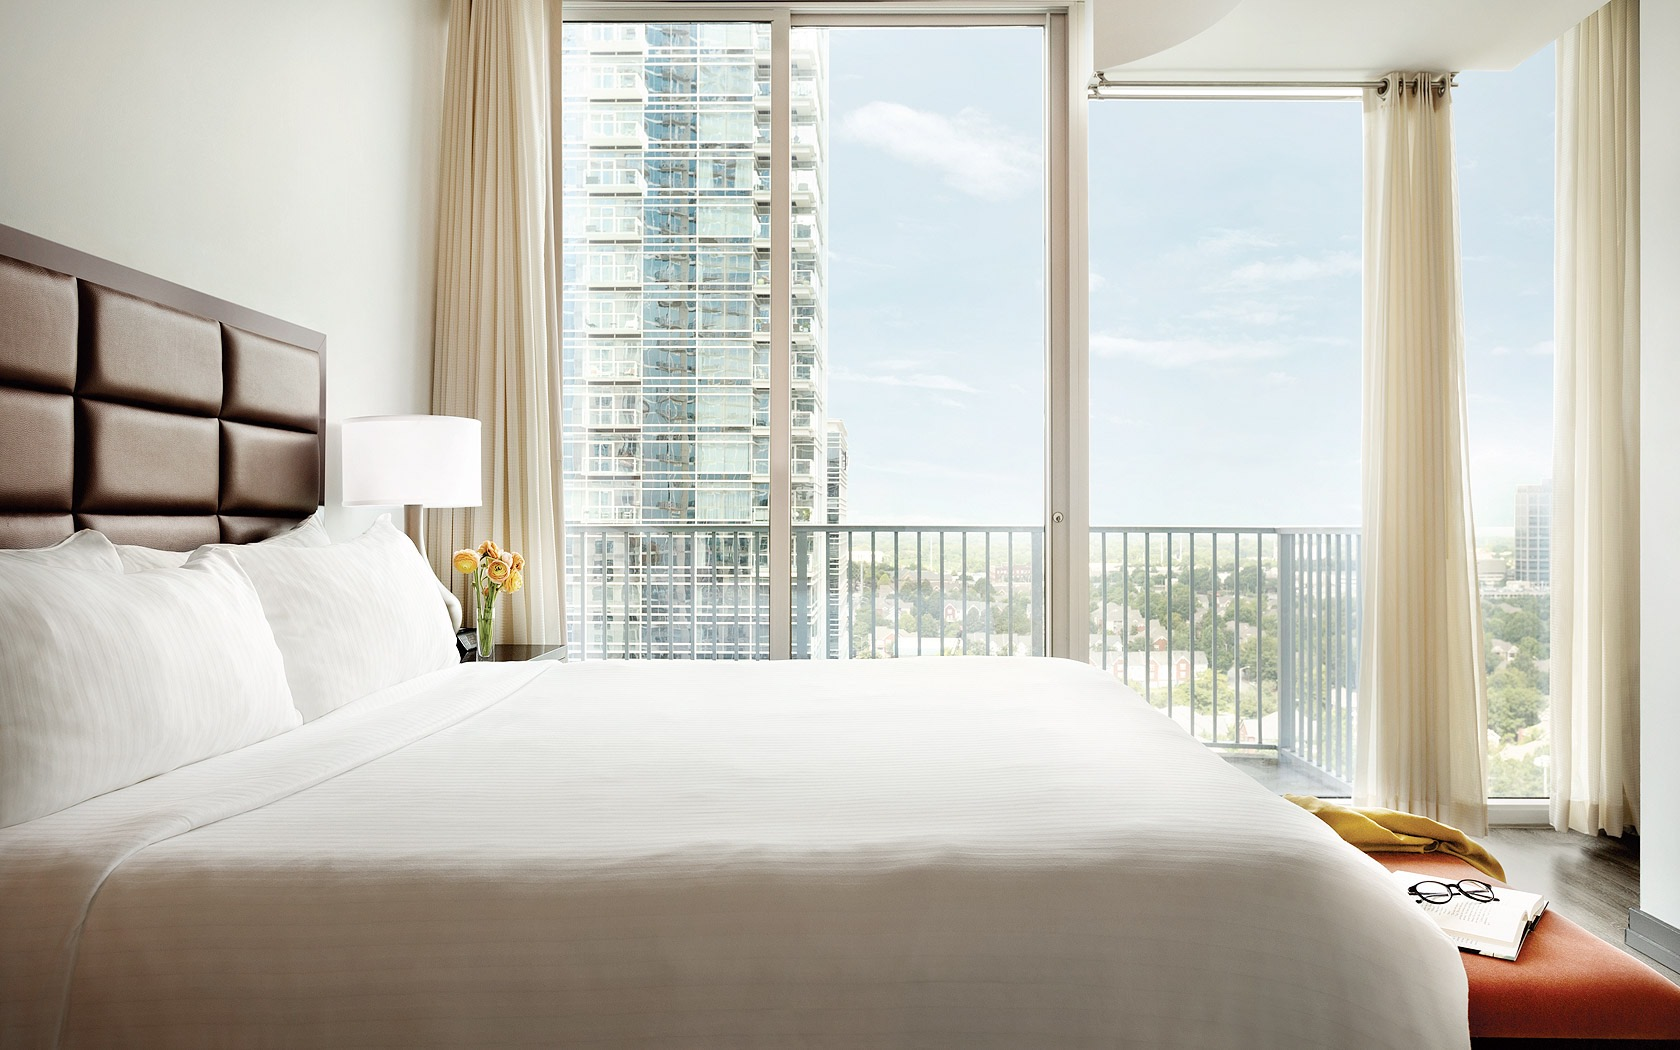 Bed with white sheets and floor length windows facing the city